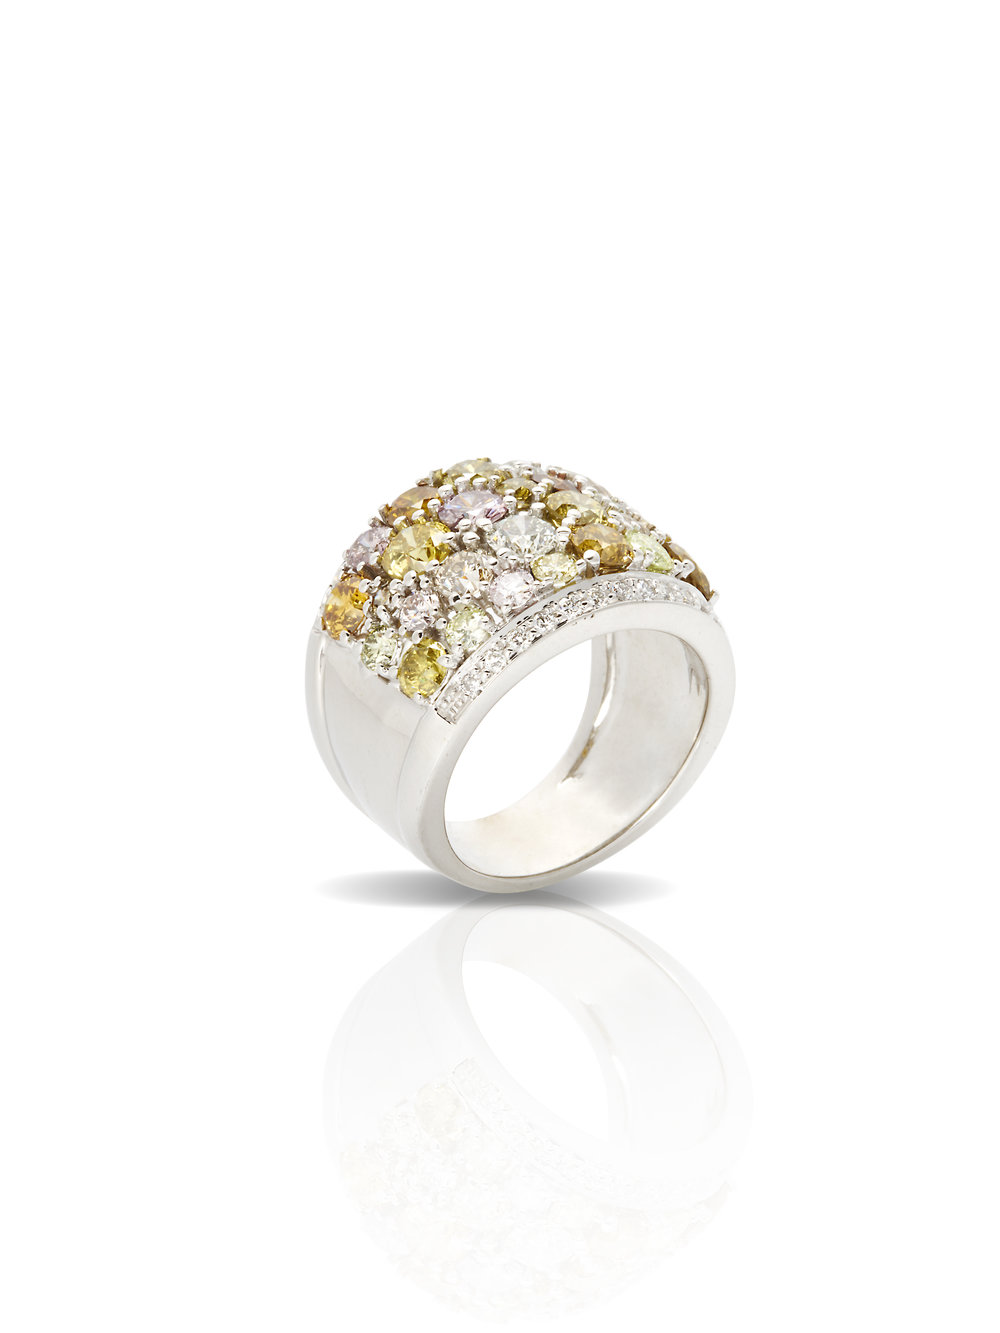 KATE RING   18K GOLD 0.25 CT OF WHITE DIAMONDS 3.97 CT OF COLORED DIAMONDS      Contact for inquiry